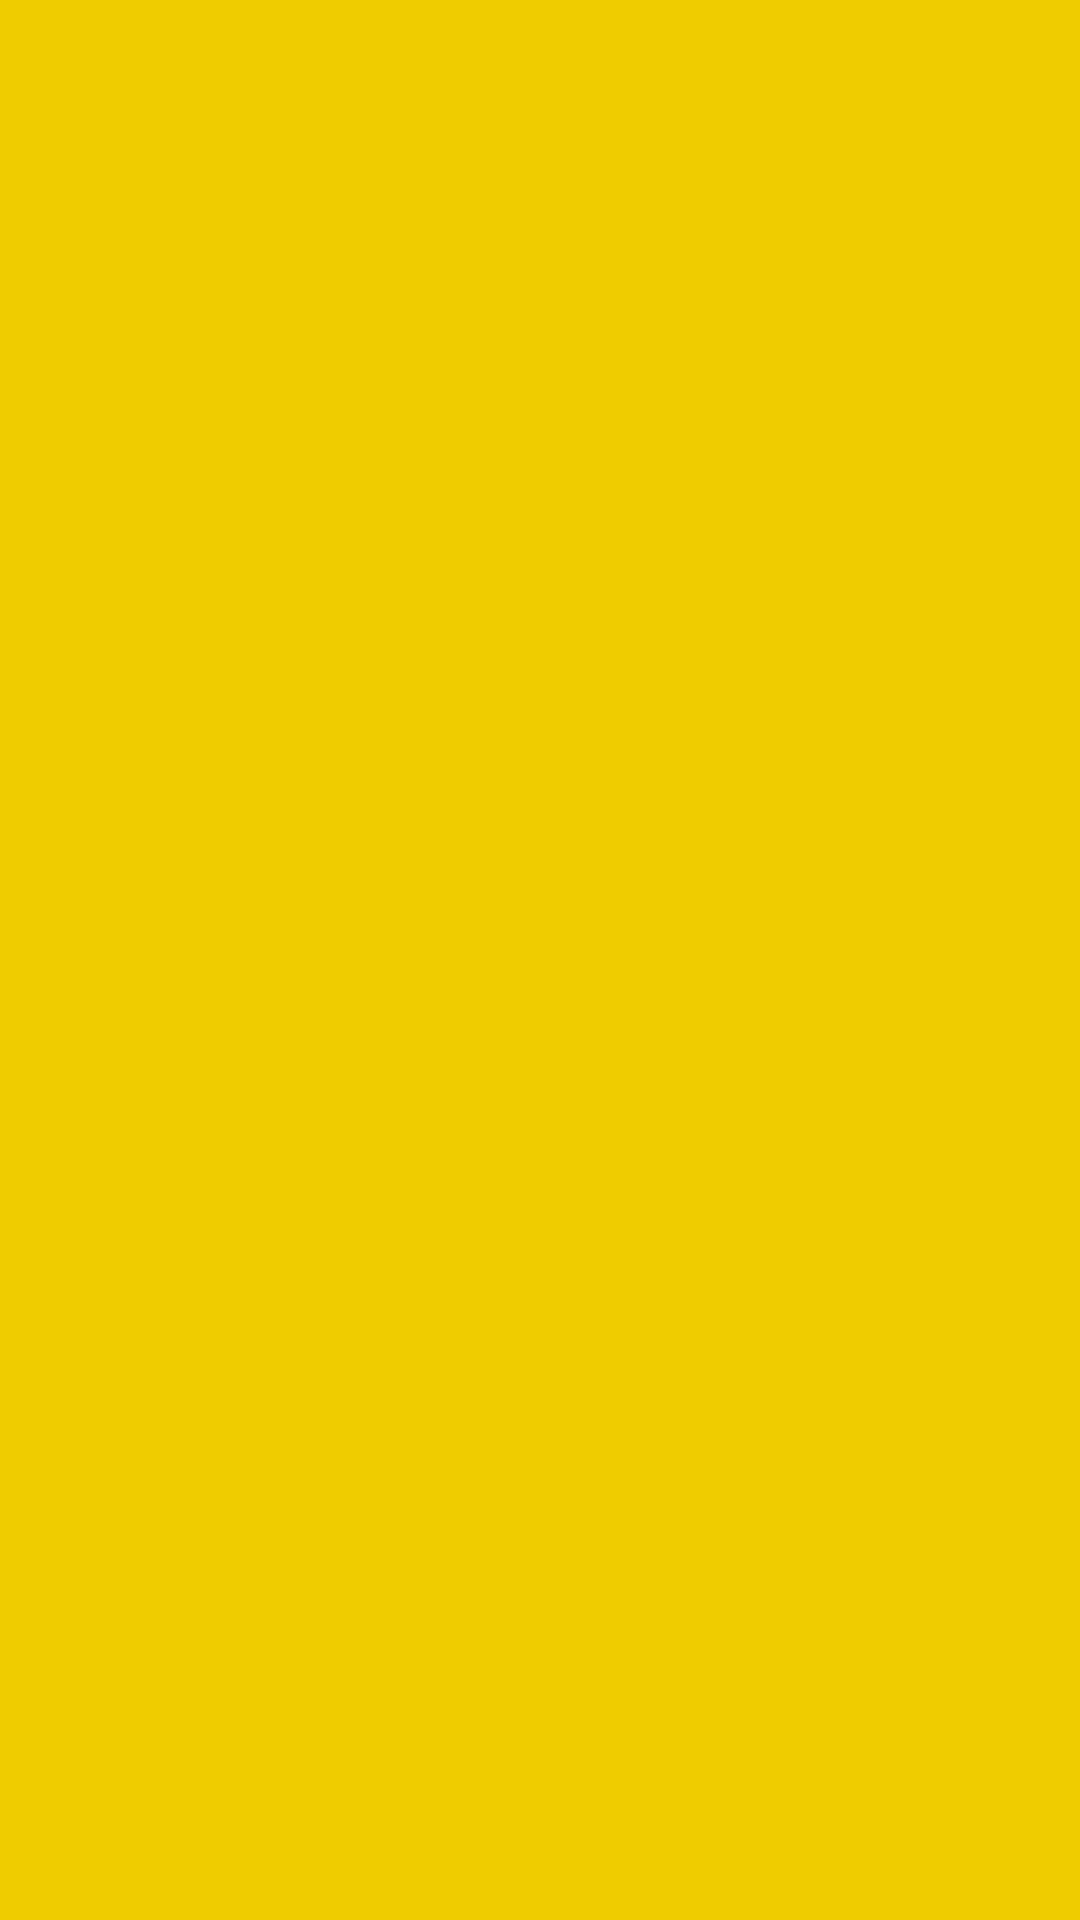 1080x1920 Yellow Munsell Solid Color Background